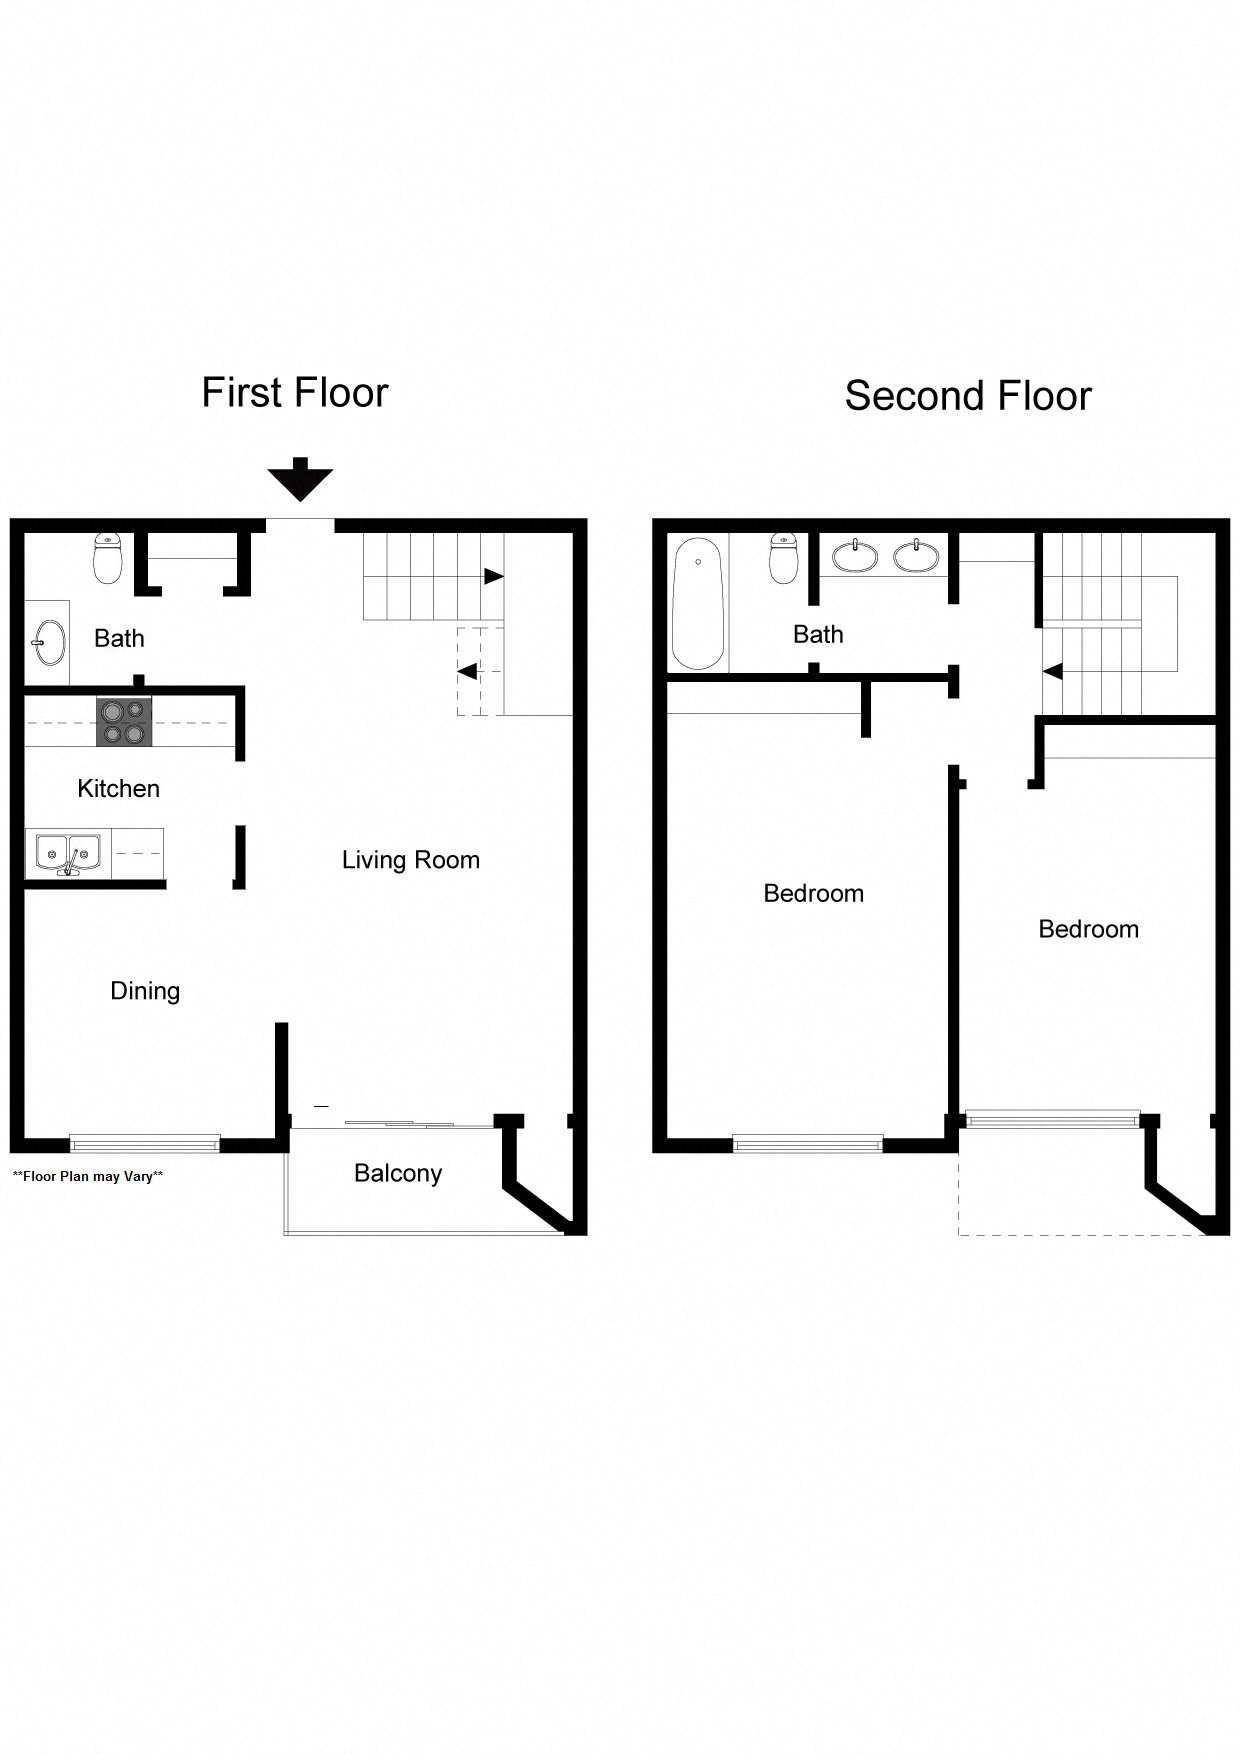 floor plans of whitney ridge apartments in fairport ny